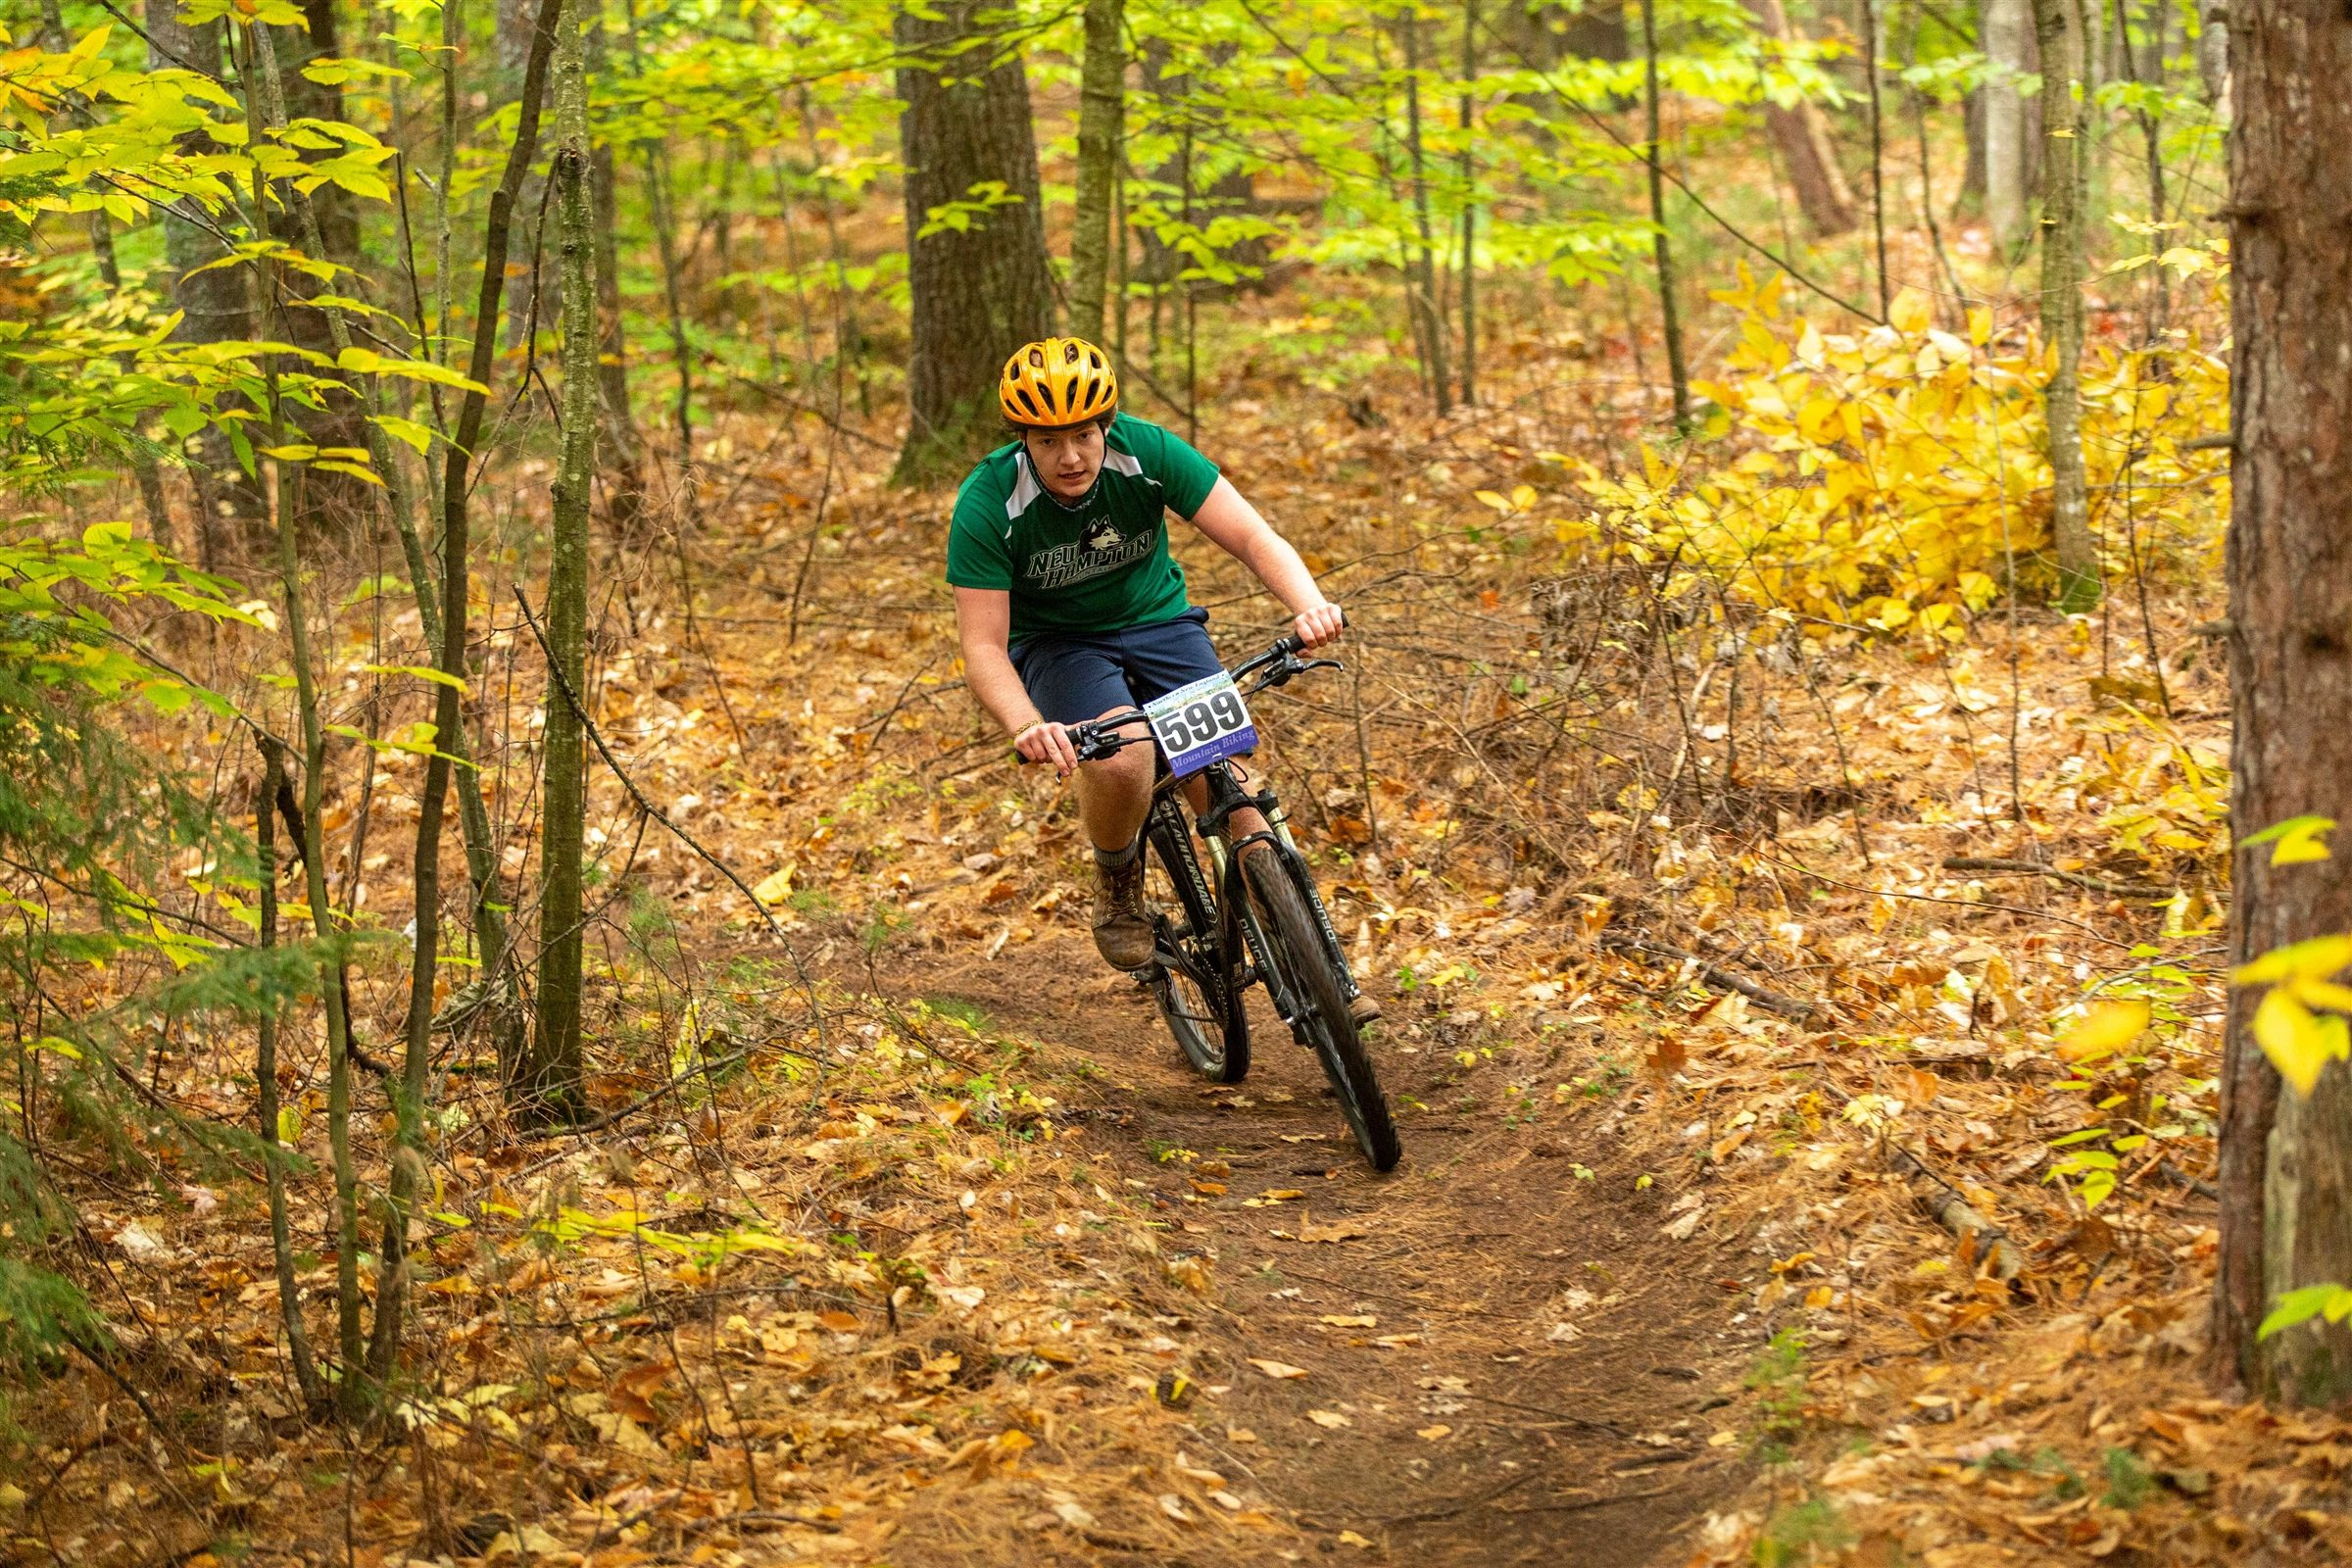 New Hampton School's Mountain Bike Team take to the trails on campus